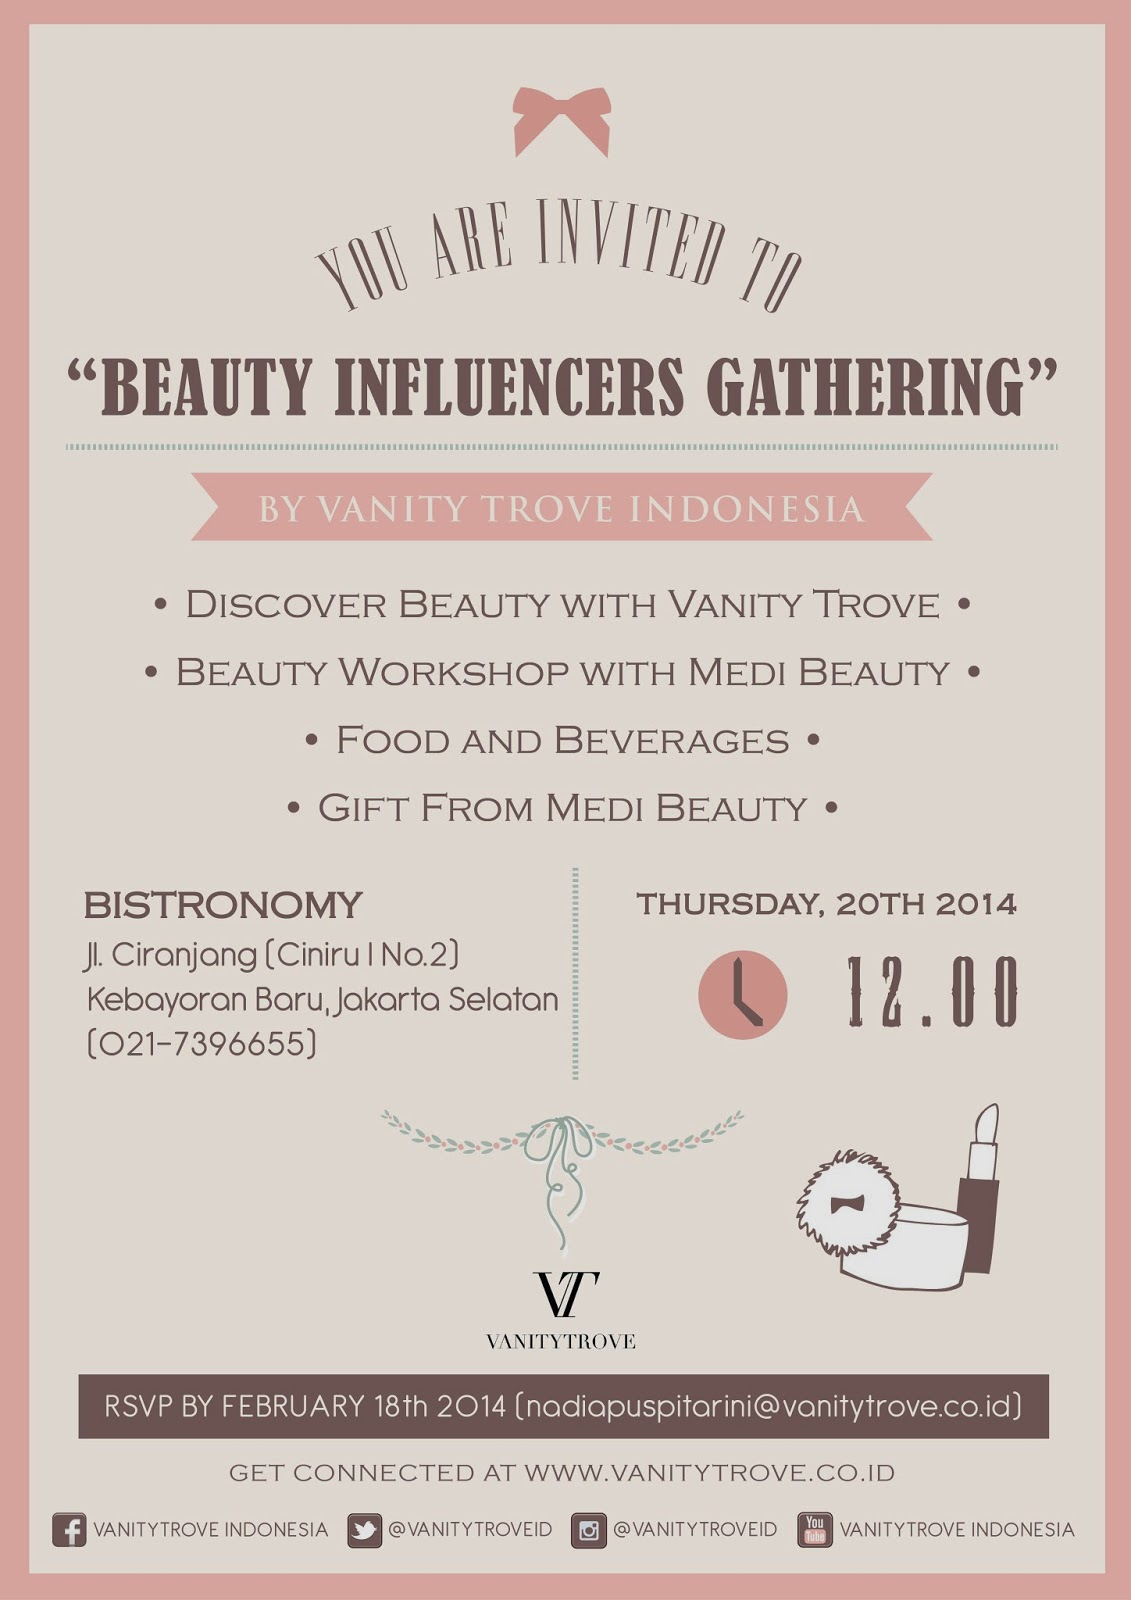 Beauty Influences Gathering by Vanity Trove Indonesia